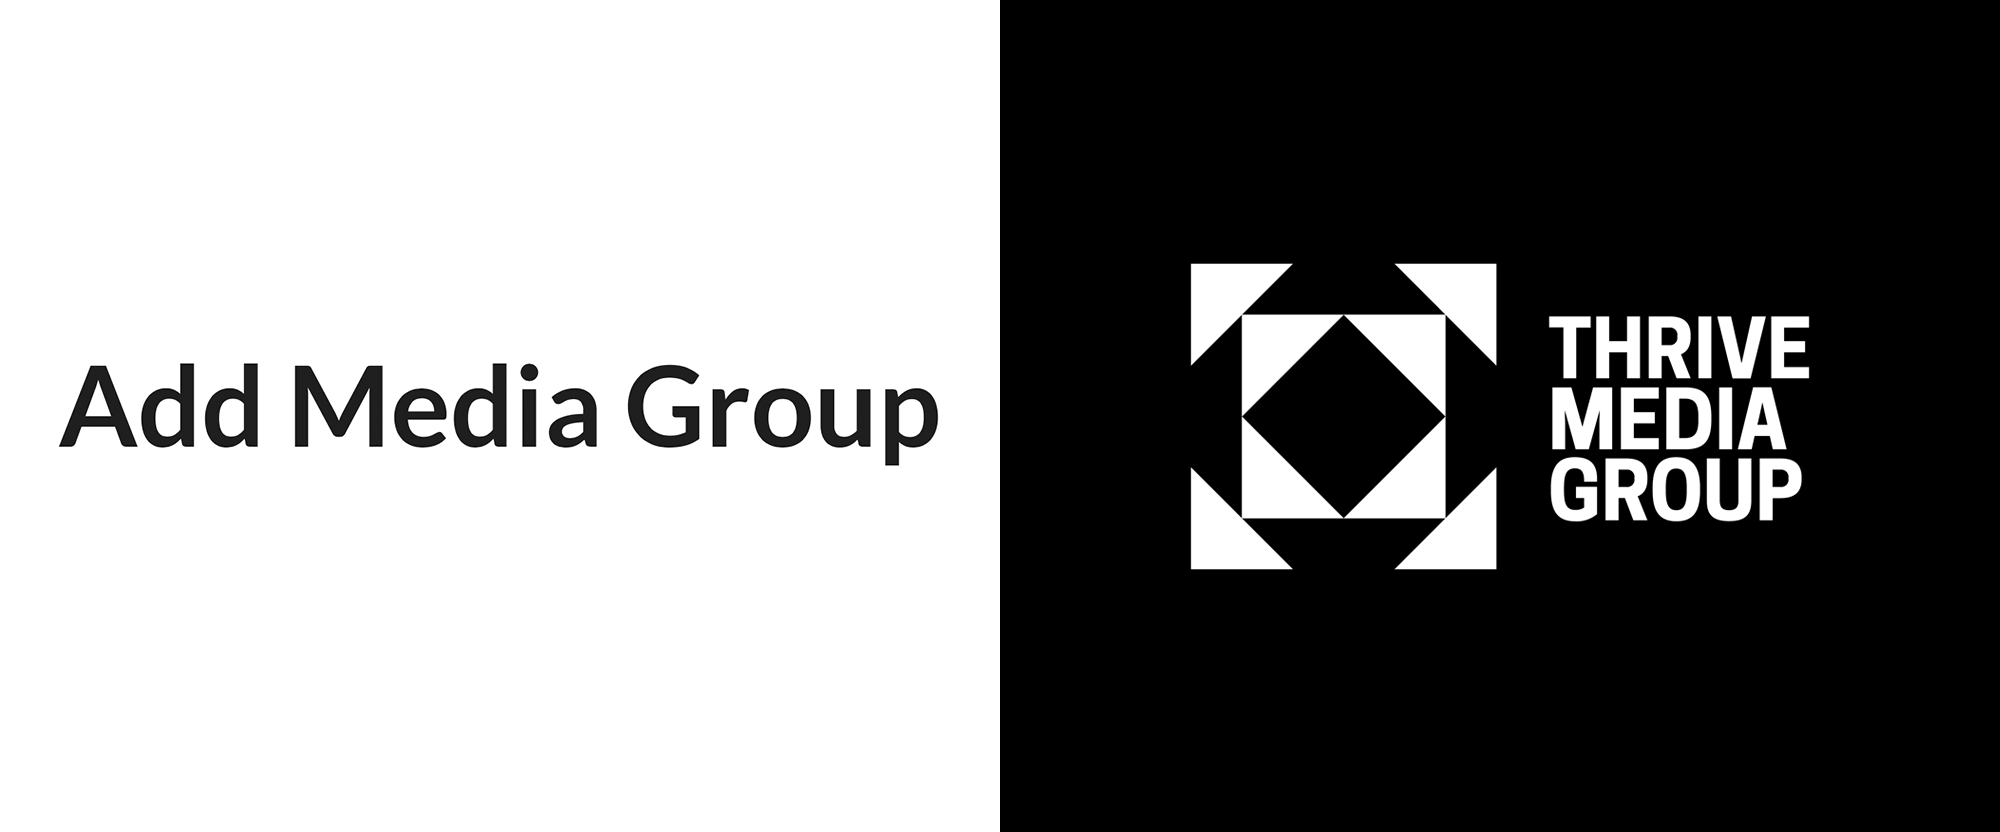 New Logo and Identity for Thrive Media Group by Ahoy